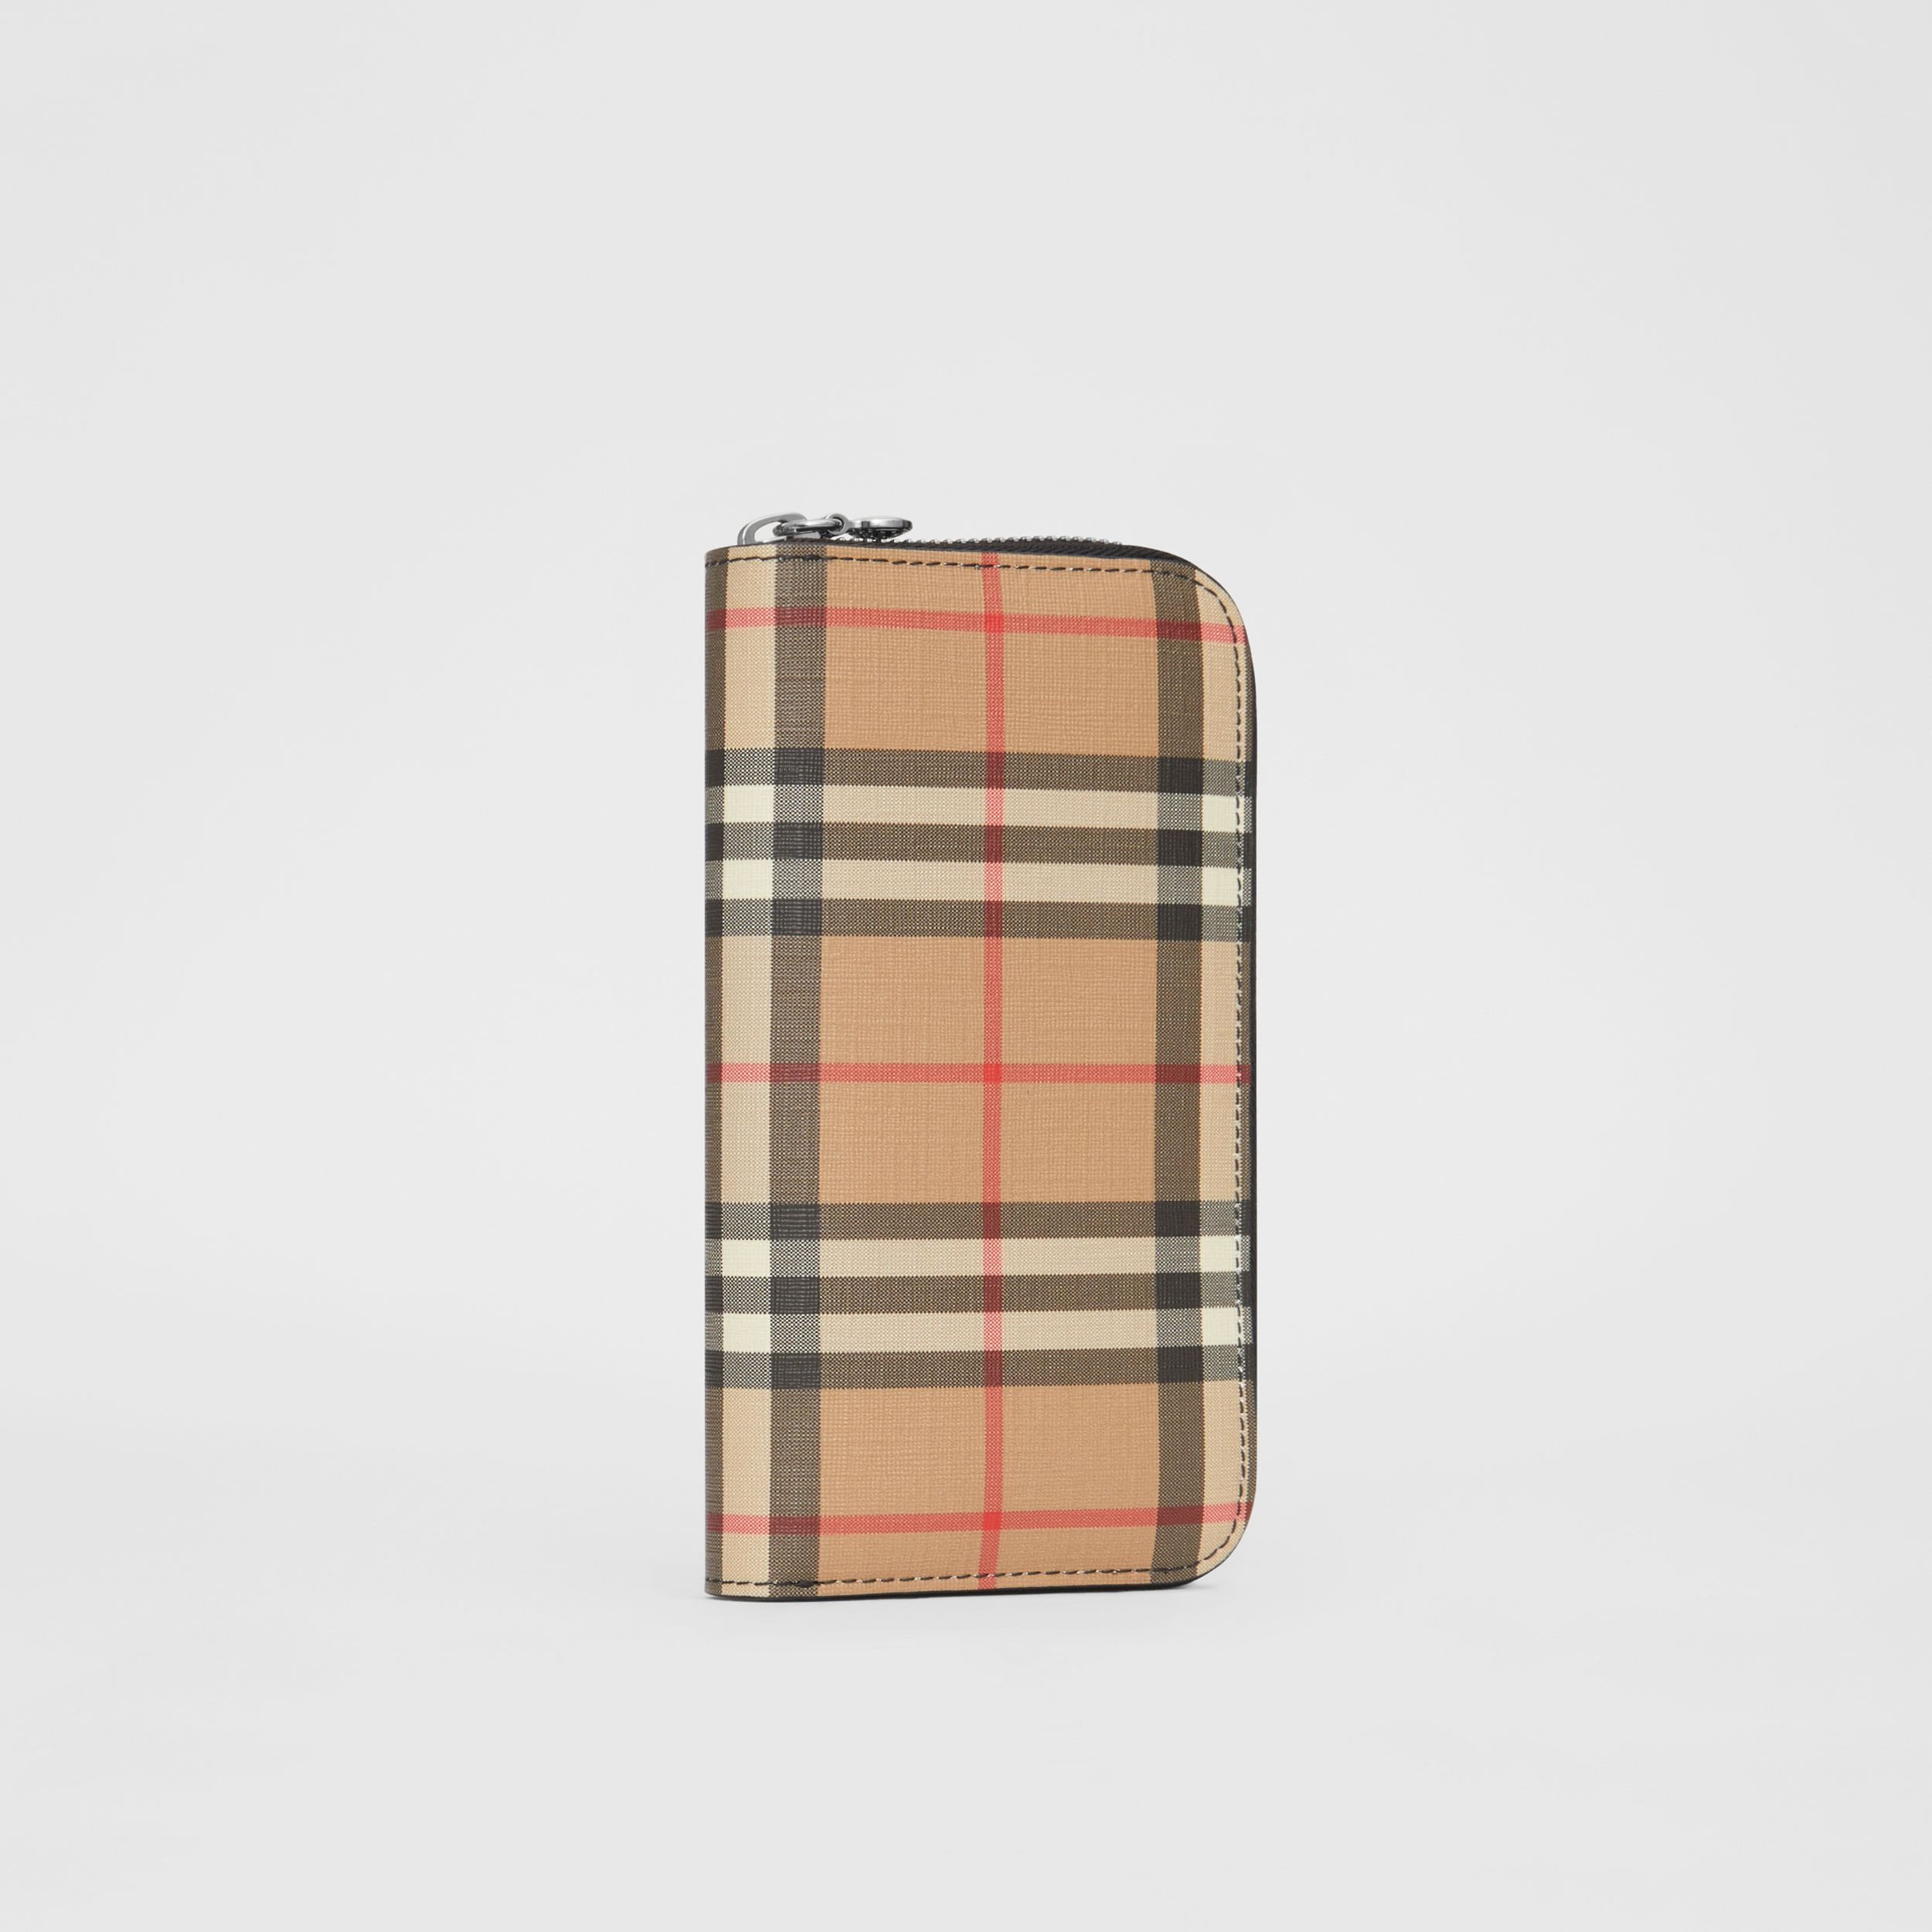 Vintage Check and Leather Ziparound Wallet in Black - Women | Burberry Singapore - 4